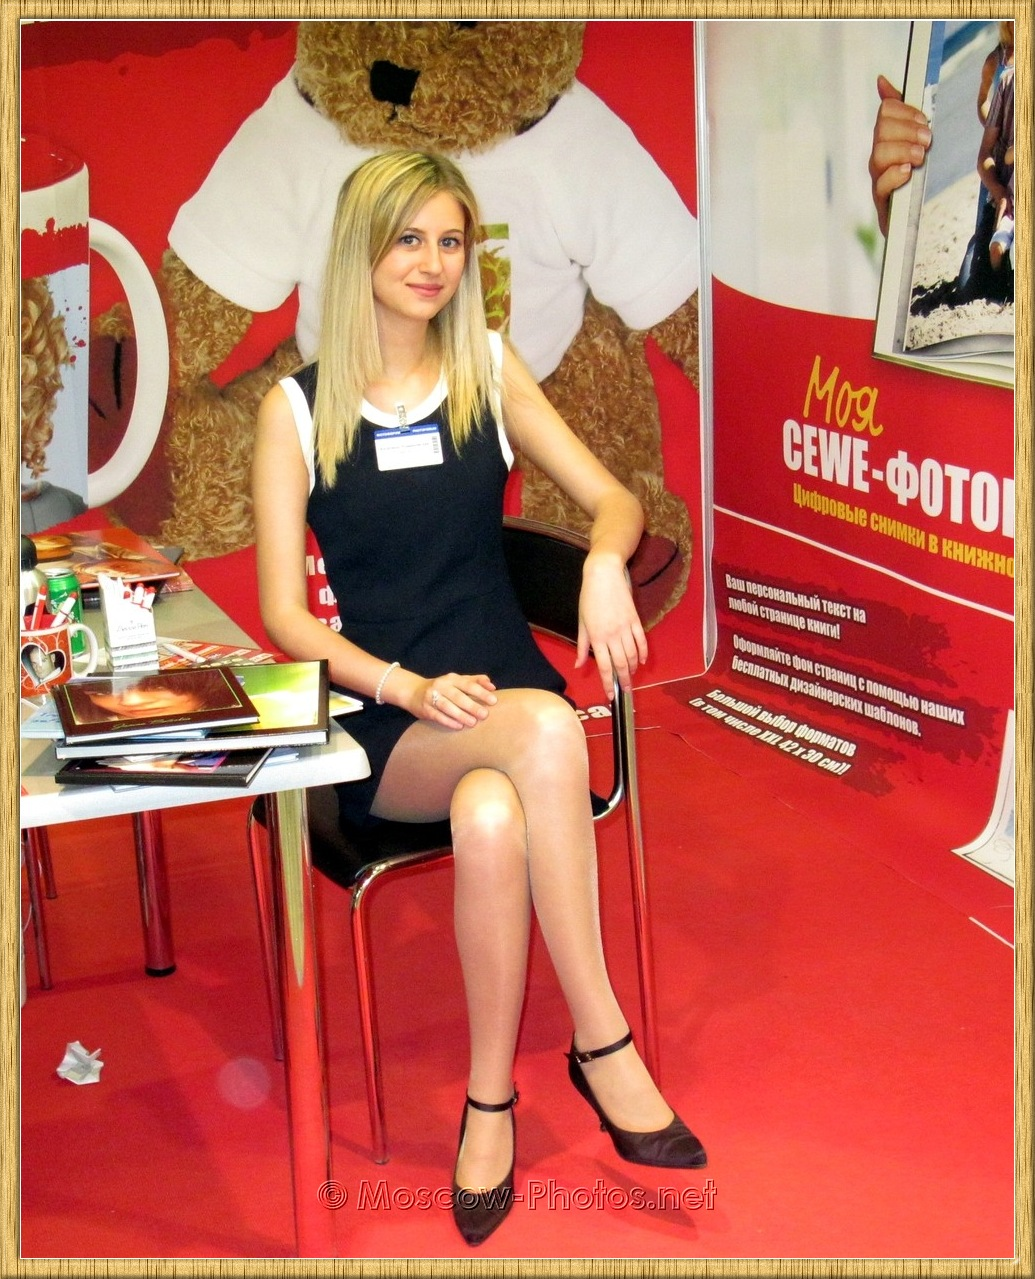 Blonde Promo Model at Moscow Photoforum